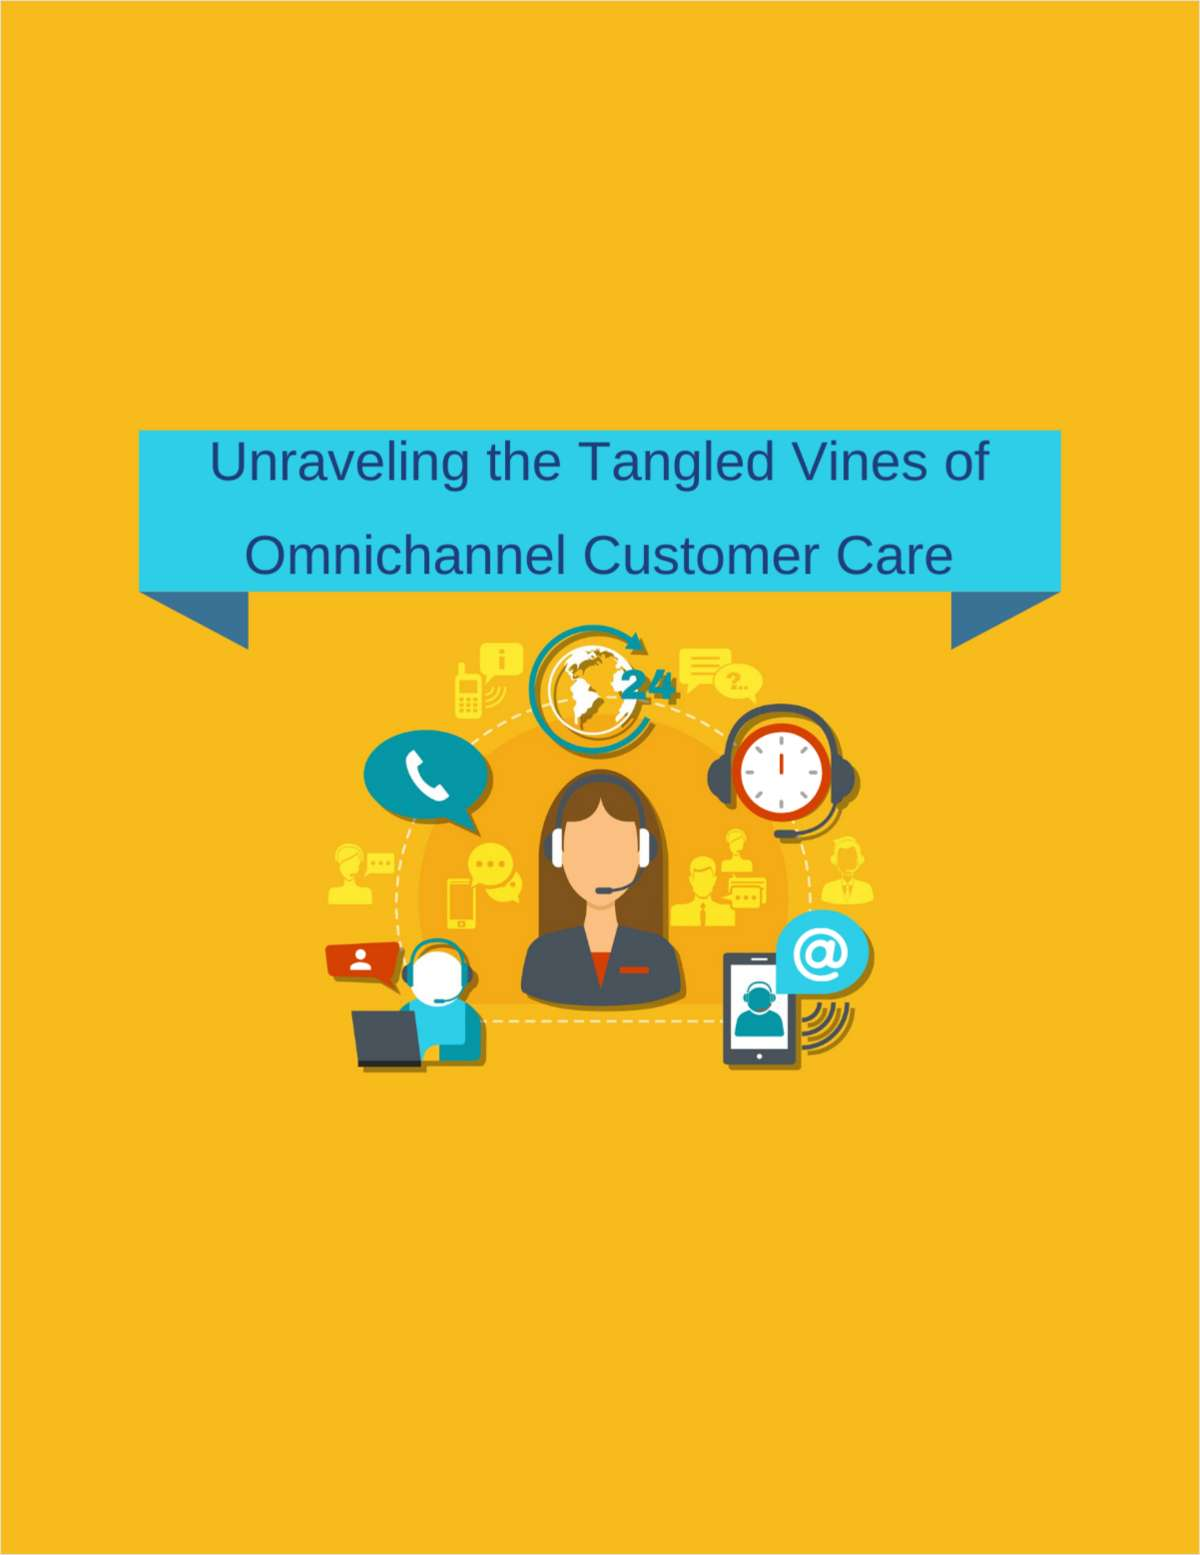 Unraveling the Tangled Vines of Omnichannel Customer Care